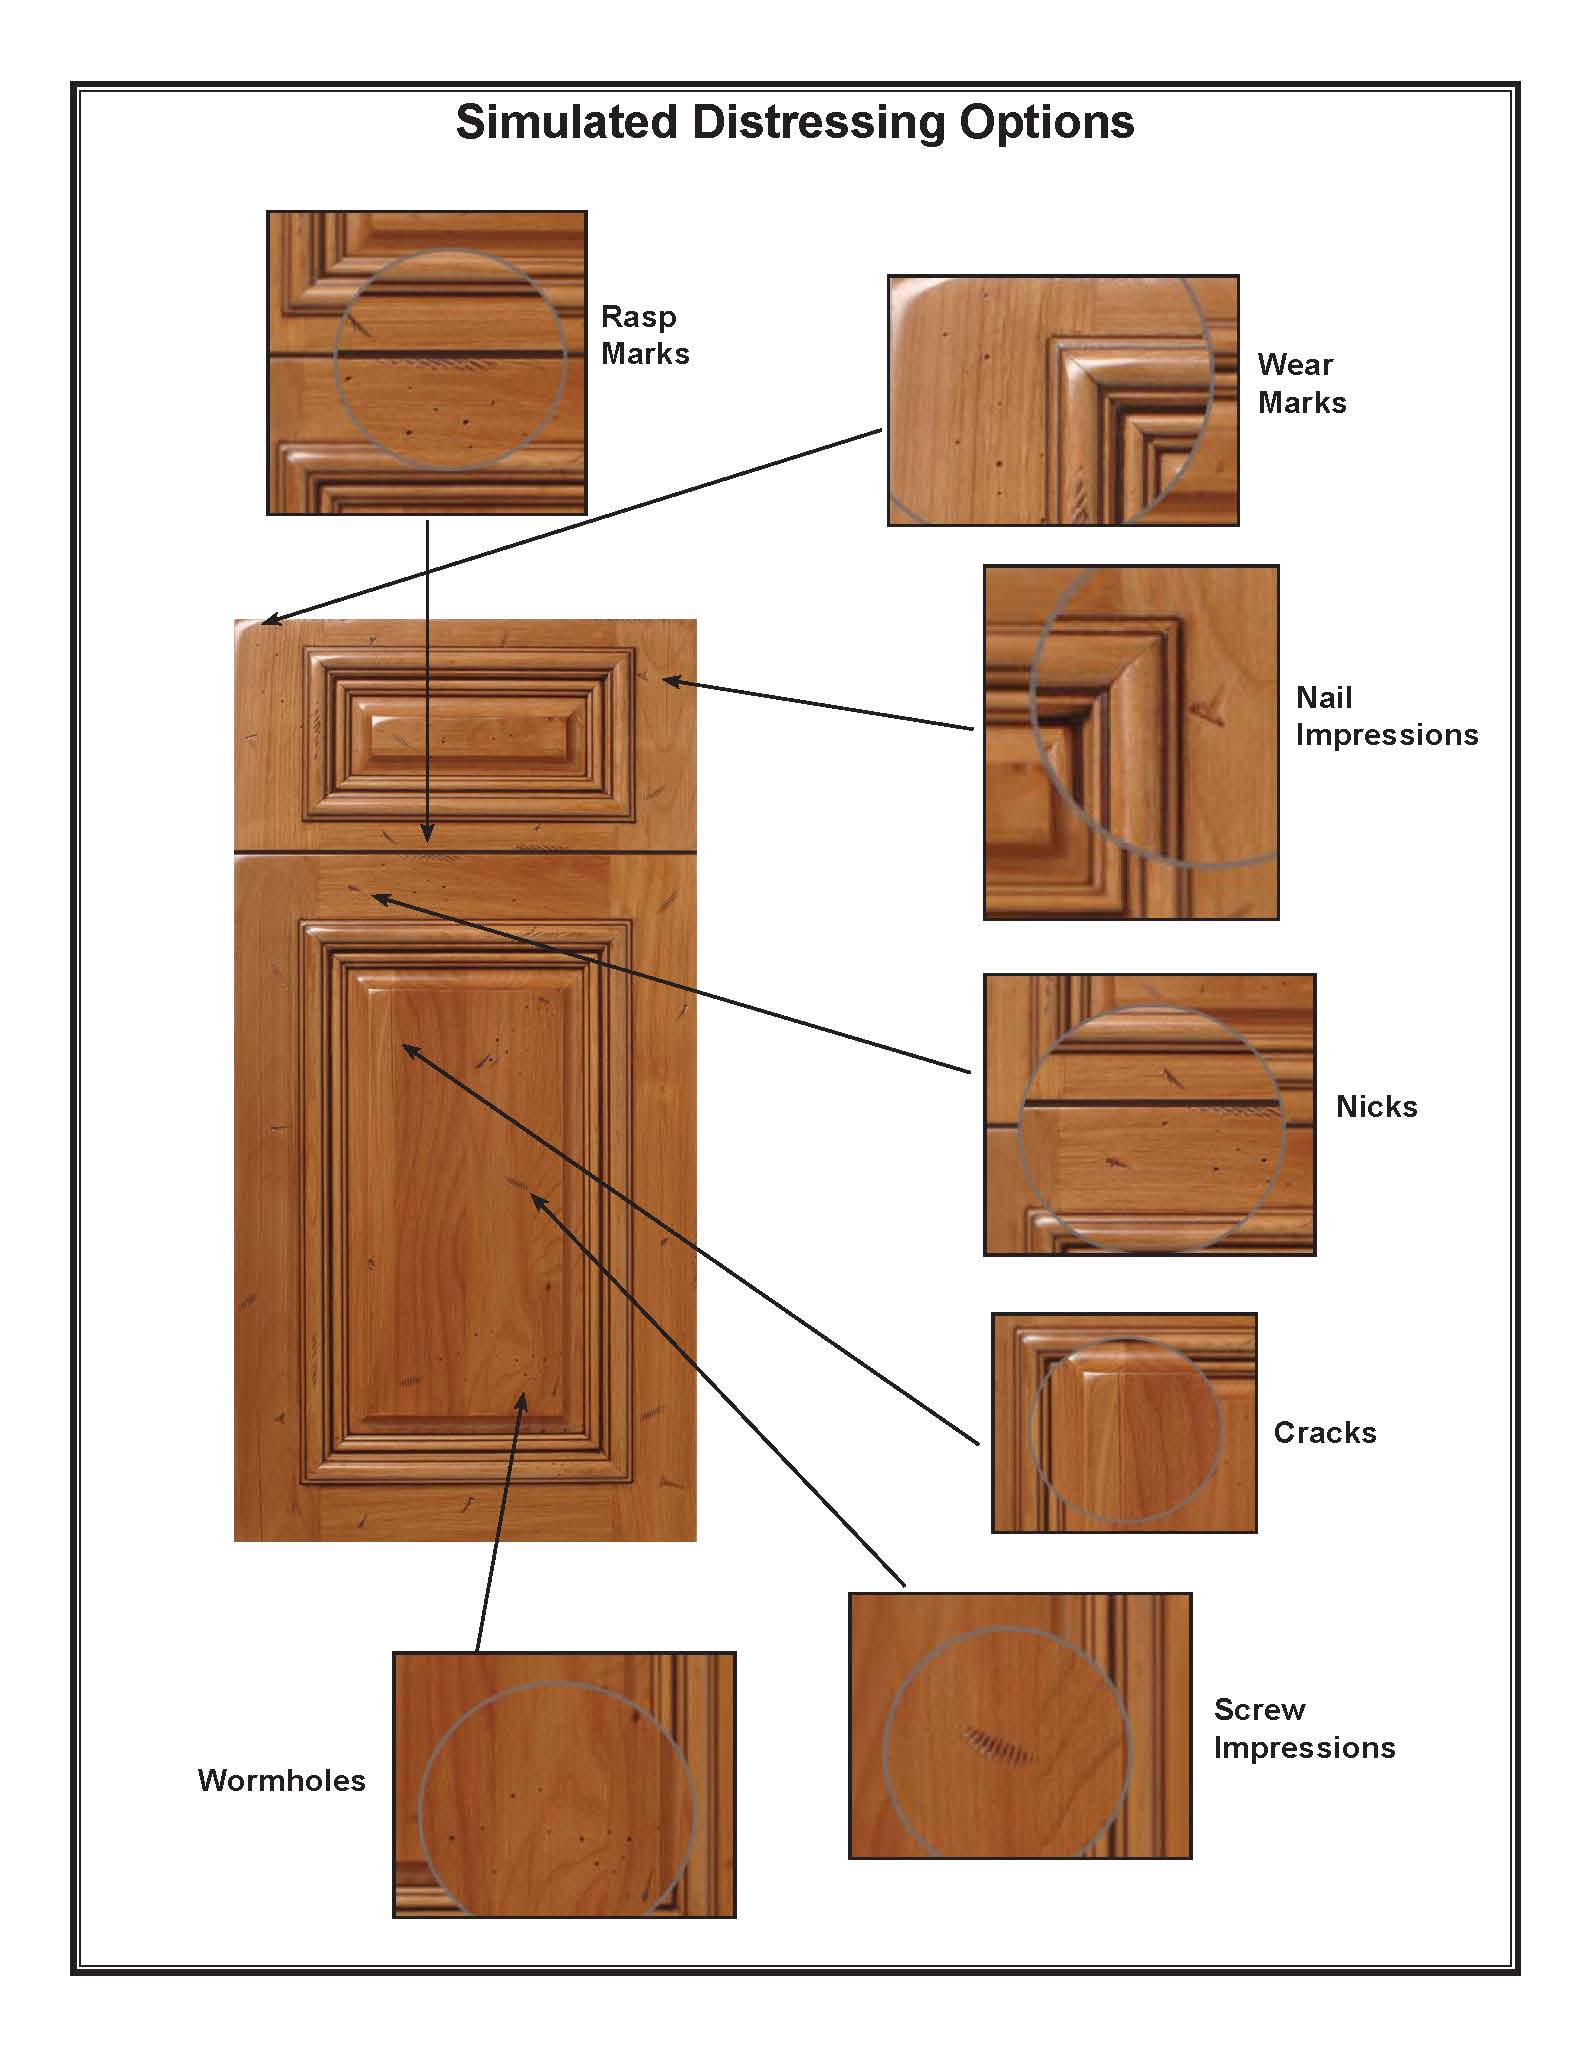 Distressing Options For Cabinet Door And Components